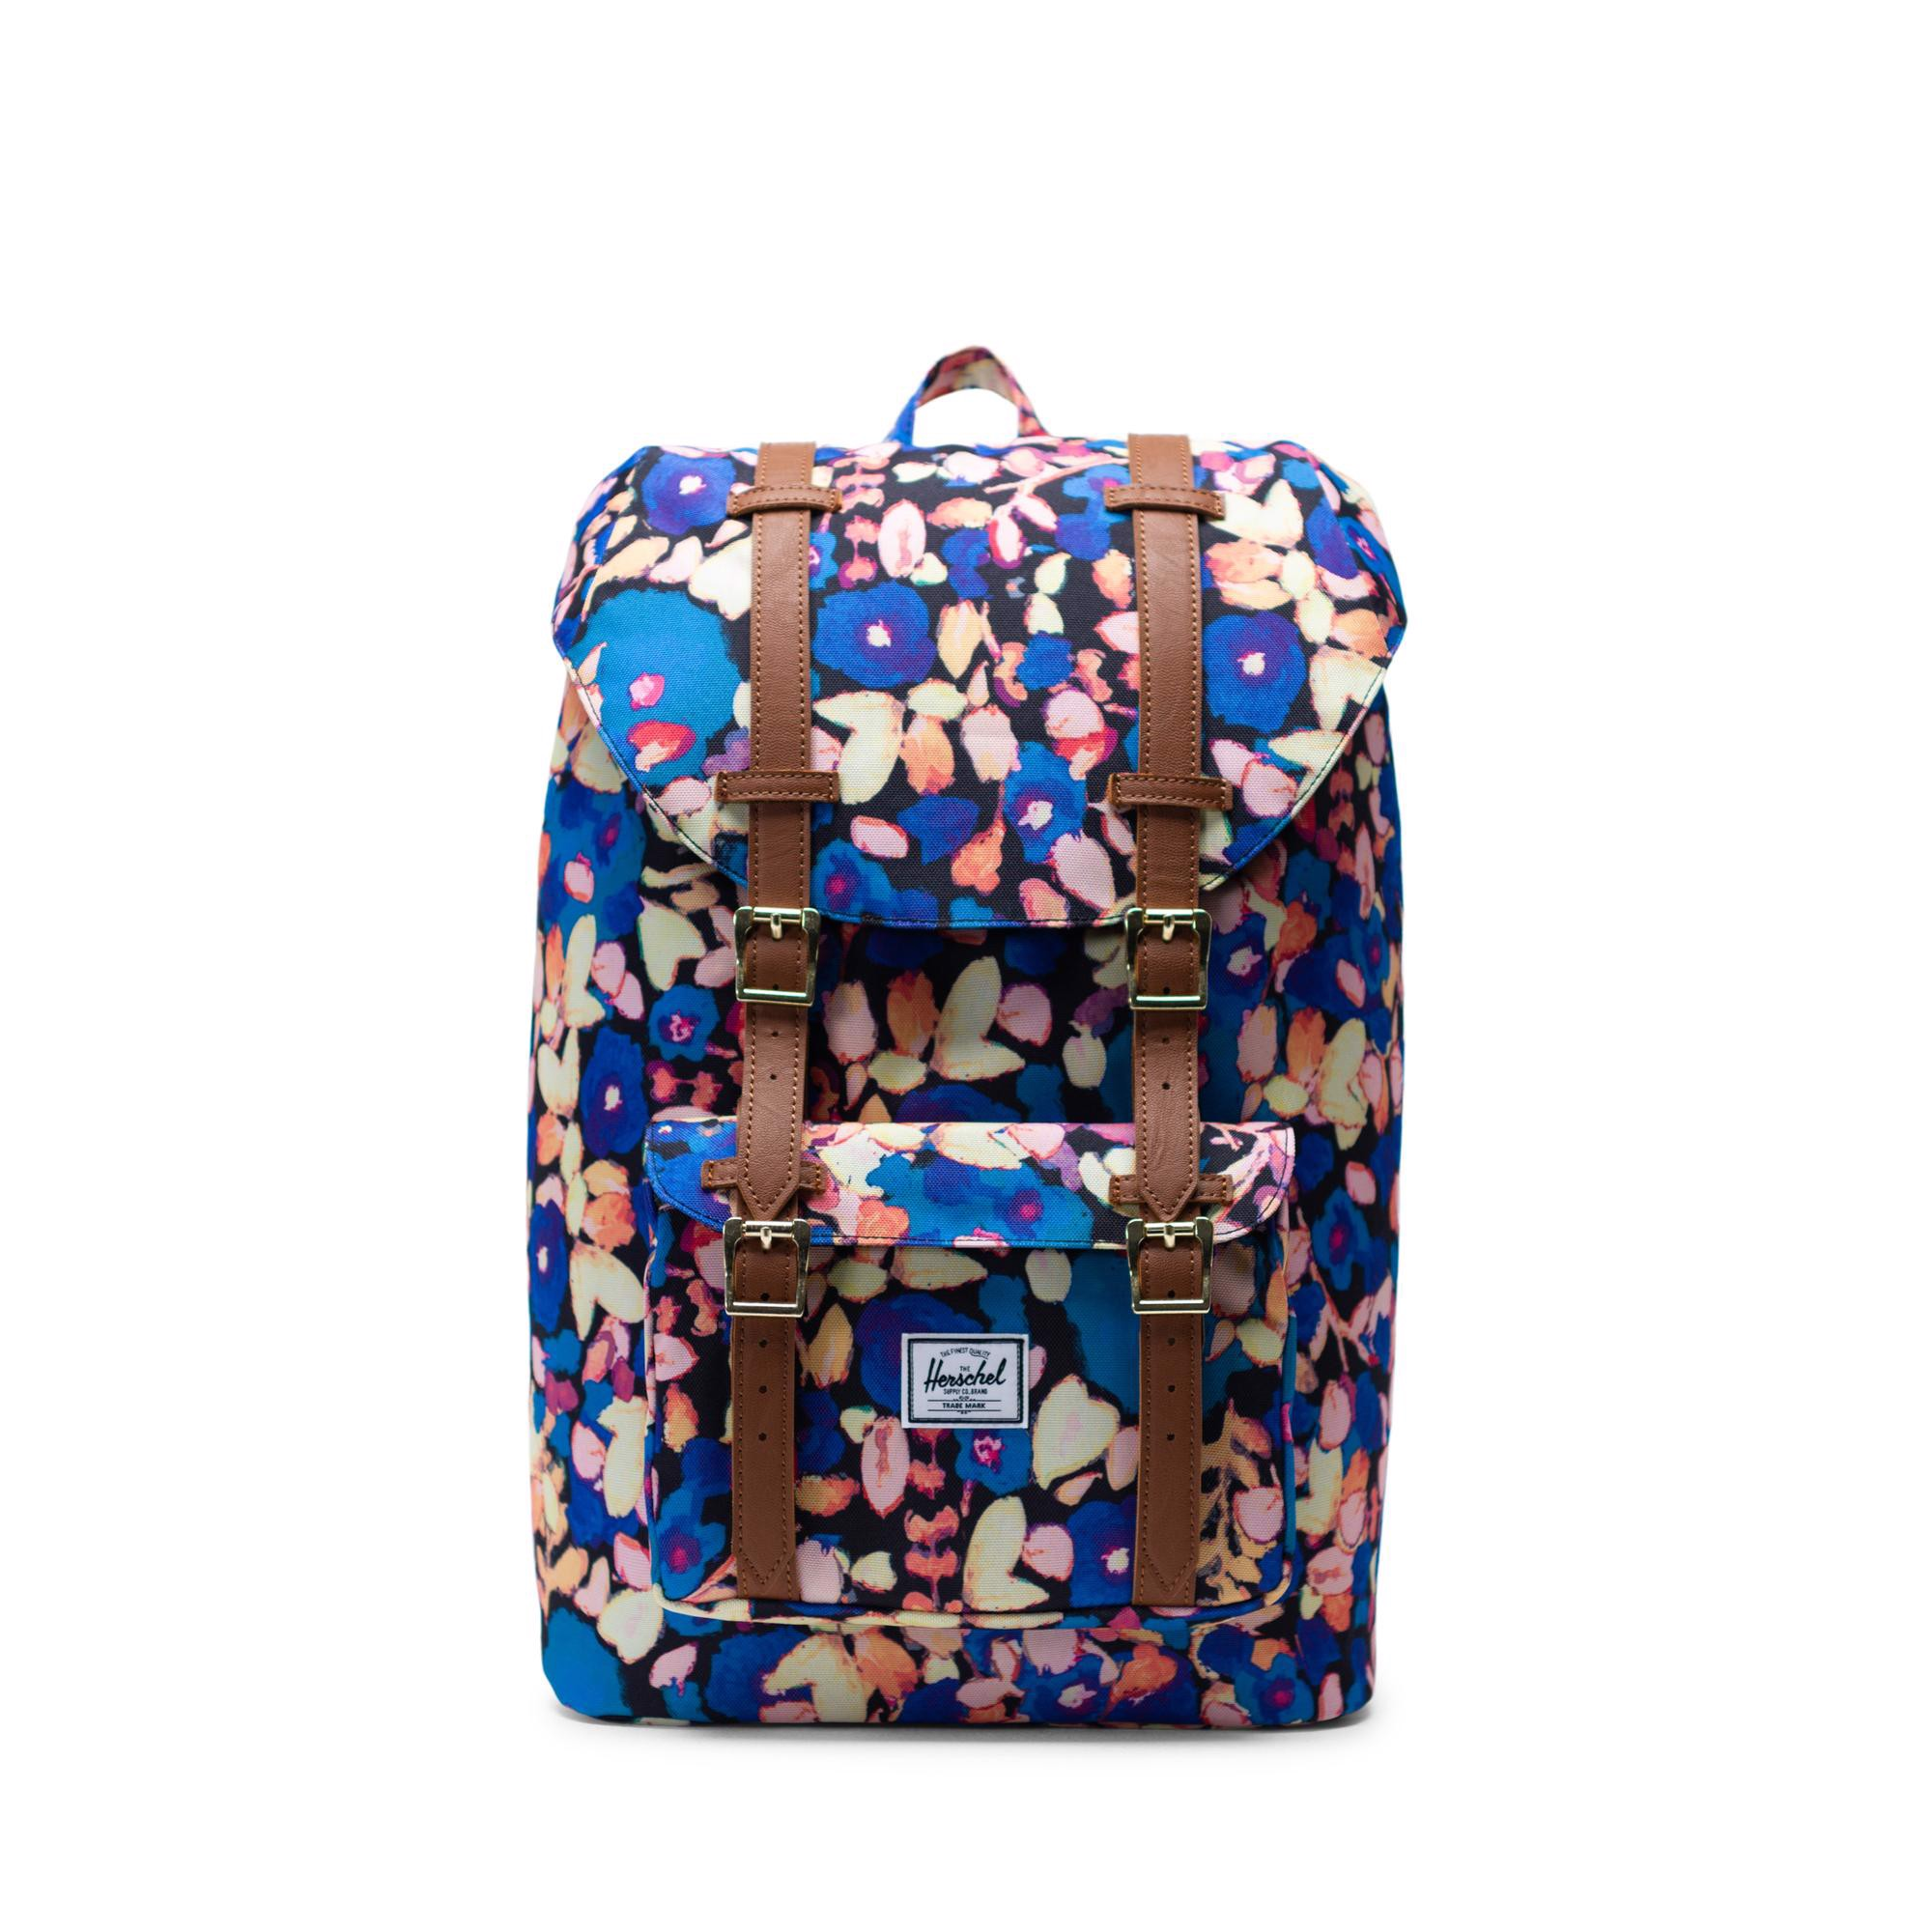 Herschel Little America | Mid-Volume - Painted Floral